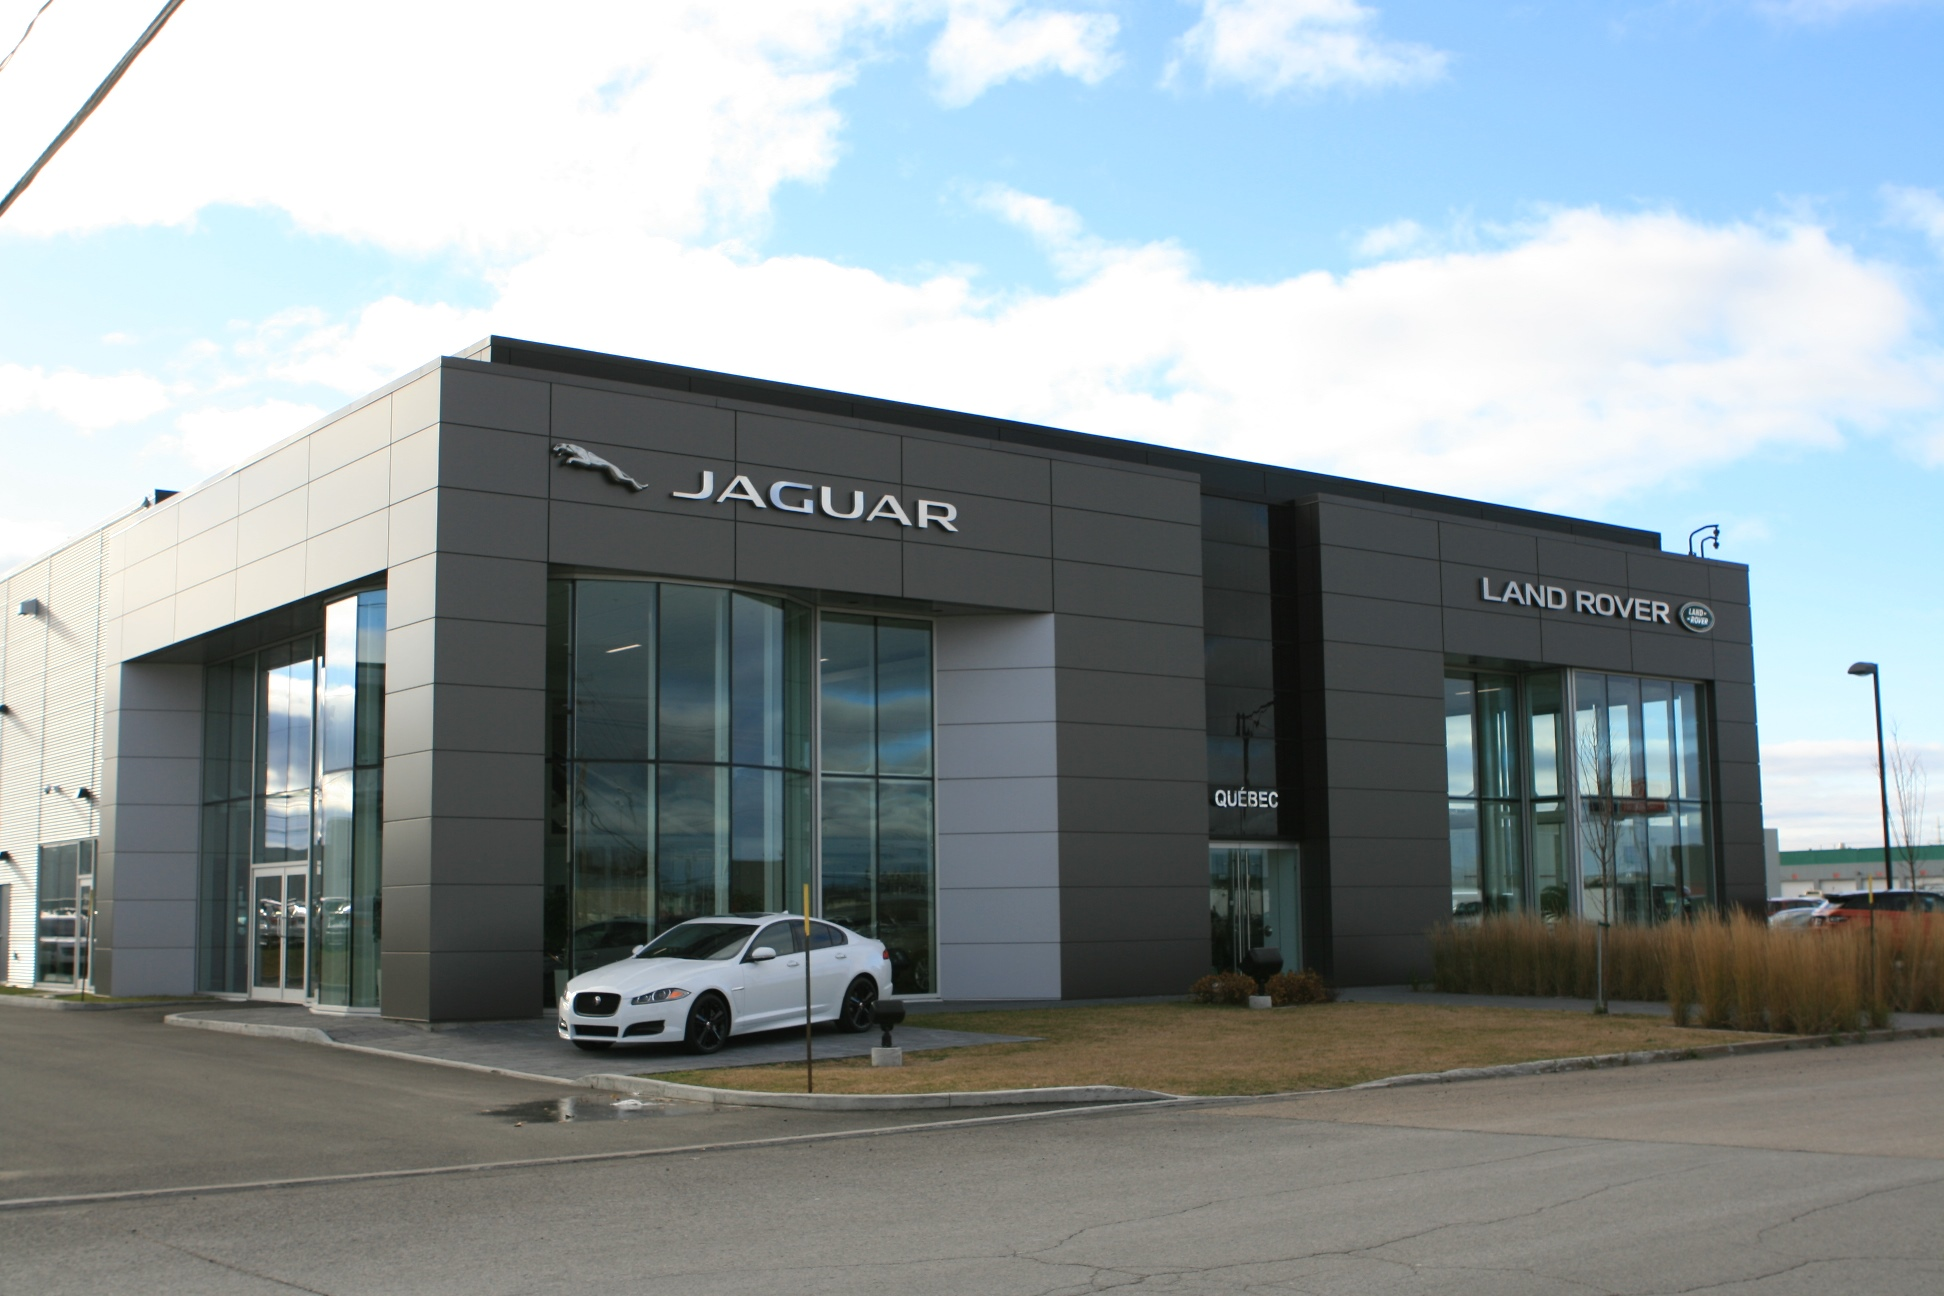 Car Dealer Jaguar Land Rover Quebec Ems